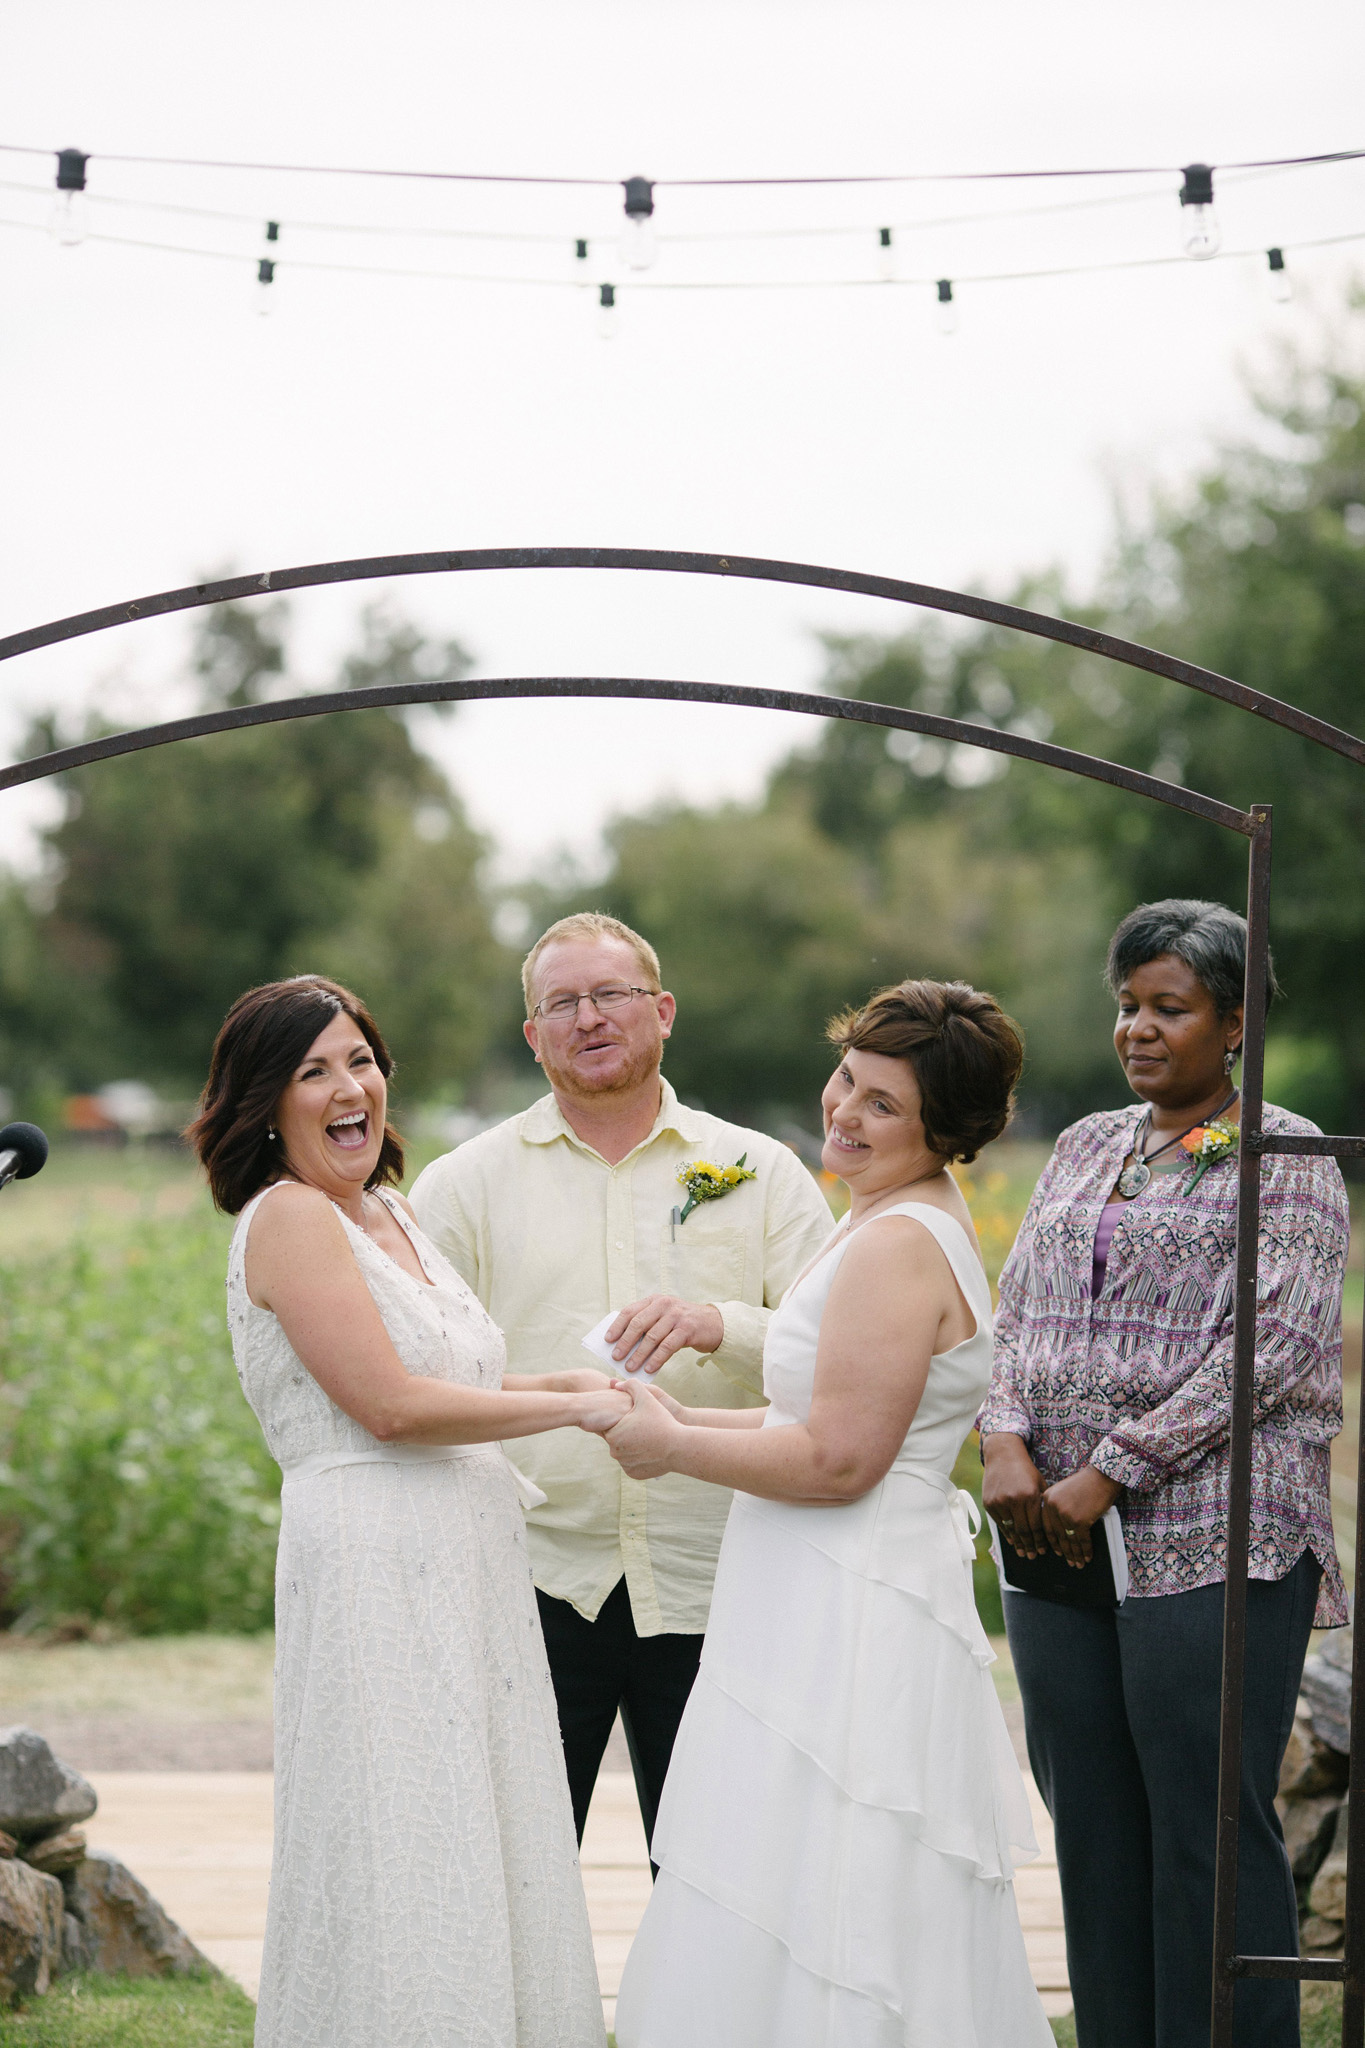 documentary wedding photographer laughing brides during ceremony at Farm at South Mountain